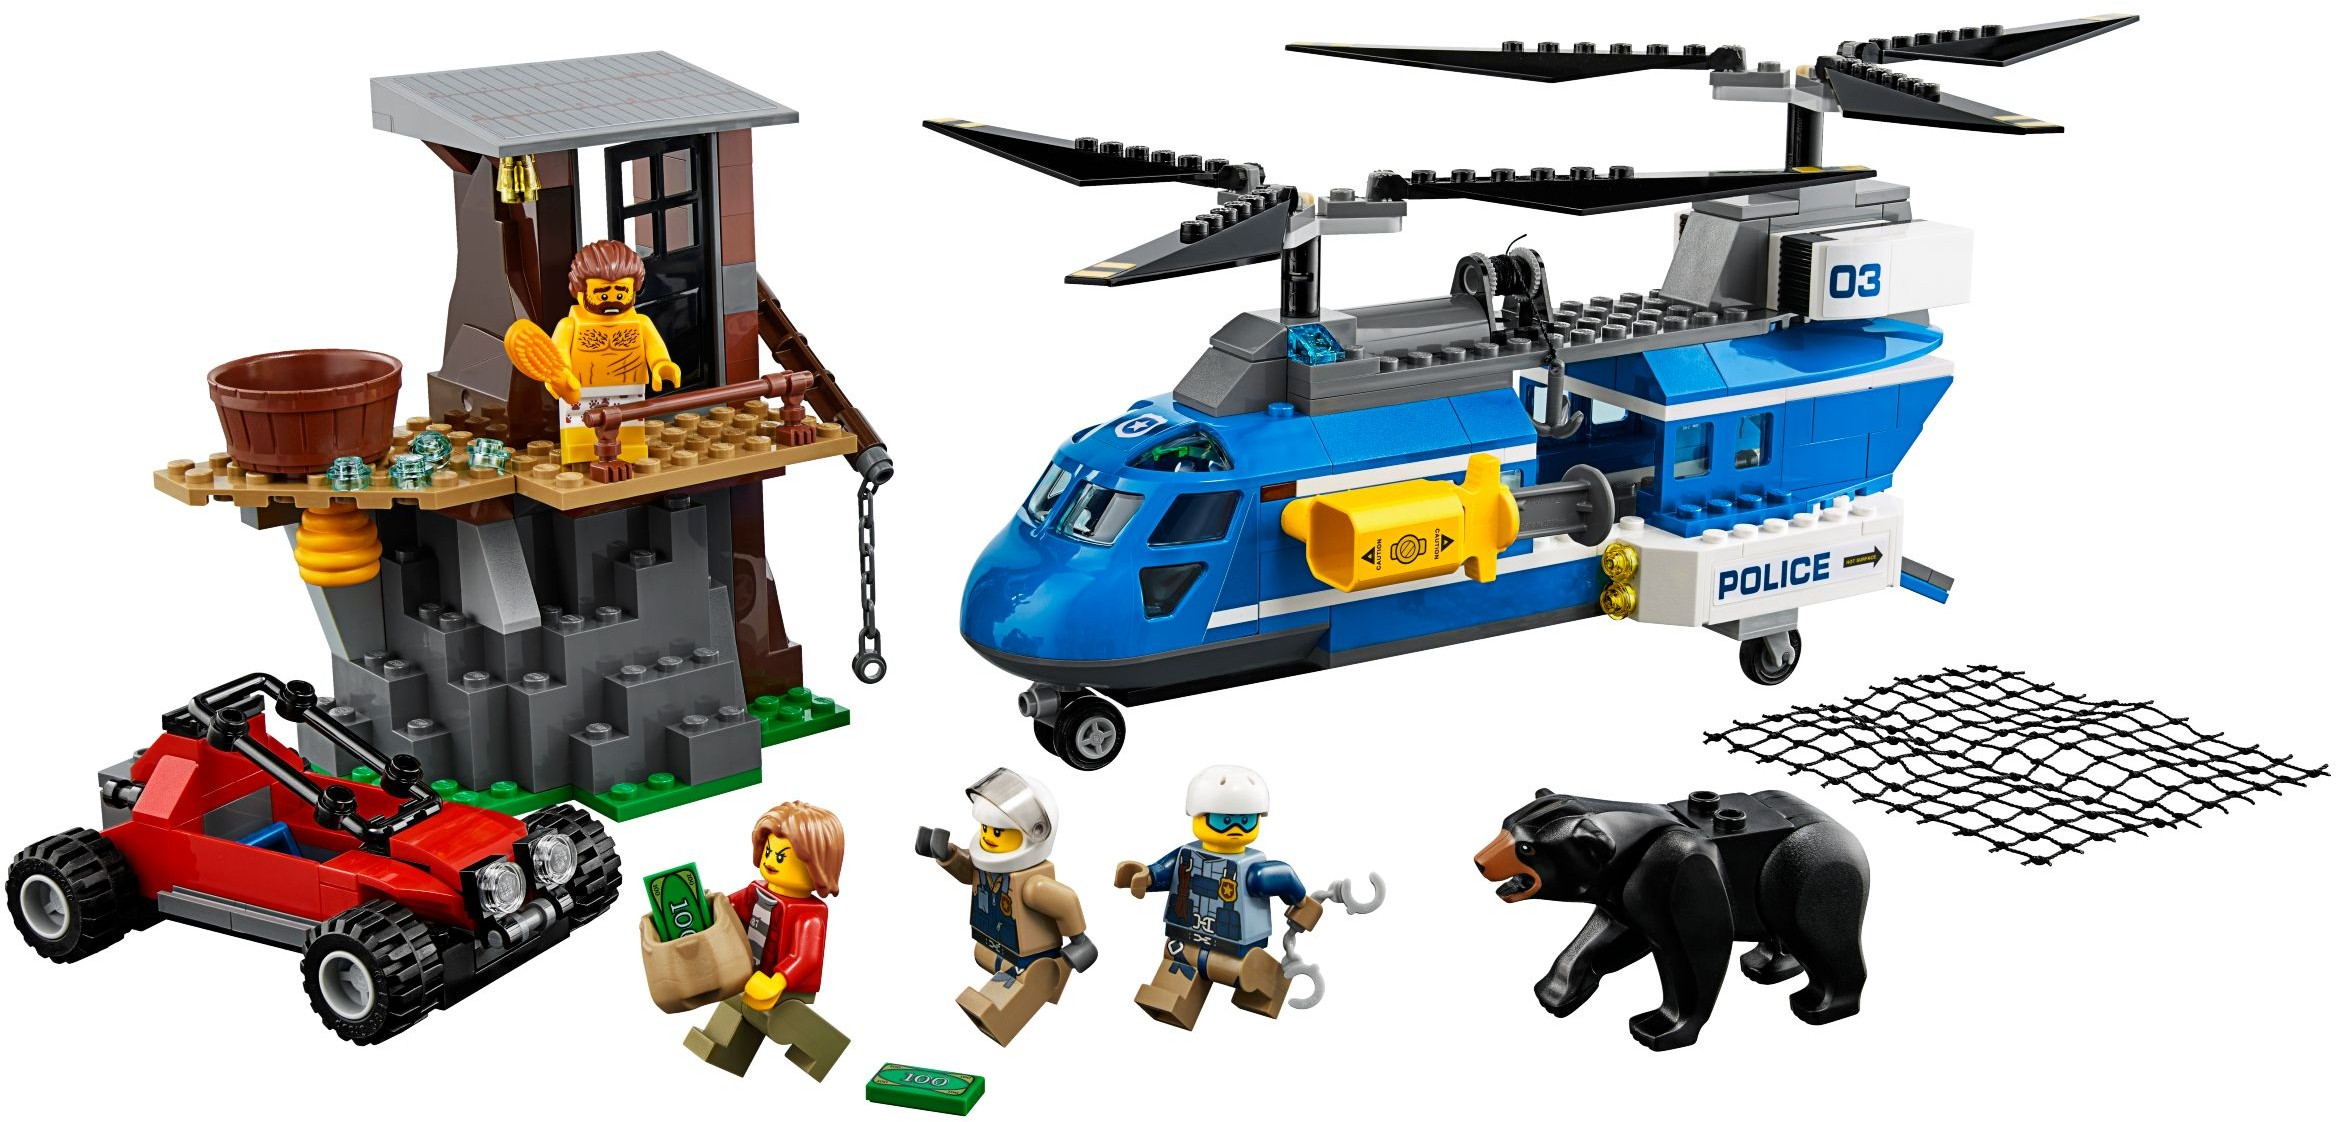 helicopter online with Lego City 2018 Sets Des Ersten Halbjahres 36835 on Rc Plane Beginners in addition Sport furthermore Top Girls Wallpapers in addition Lego City 2018 Sets Des Ersten Halbjahres 36835 further P 996 LAZER.